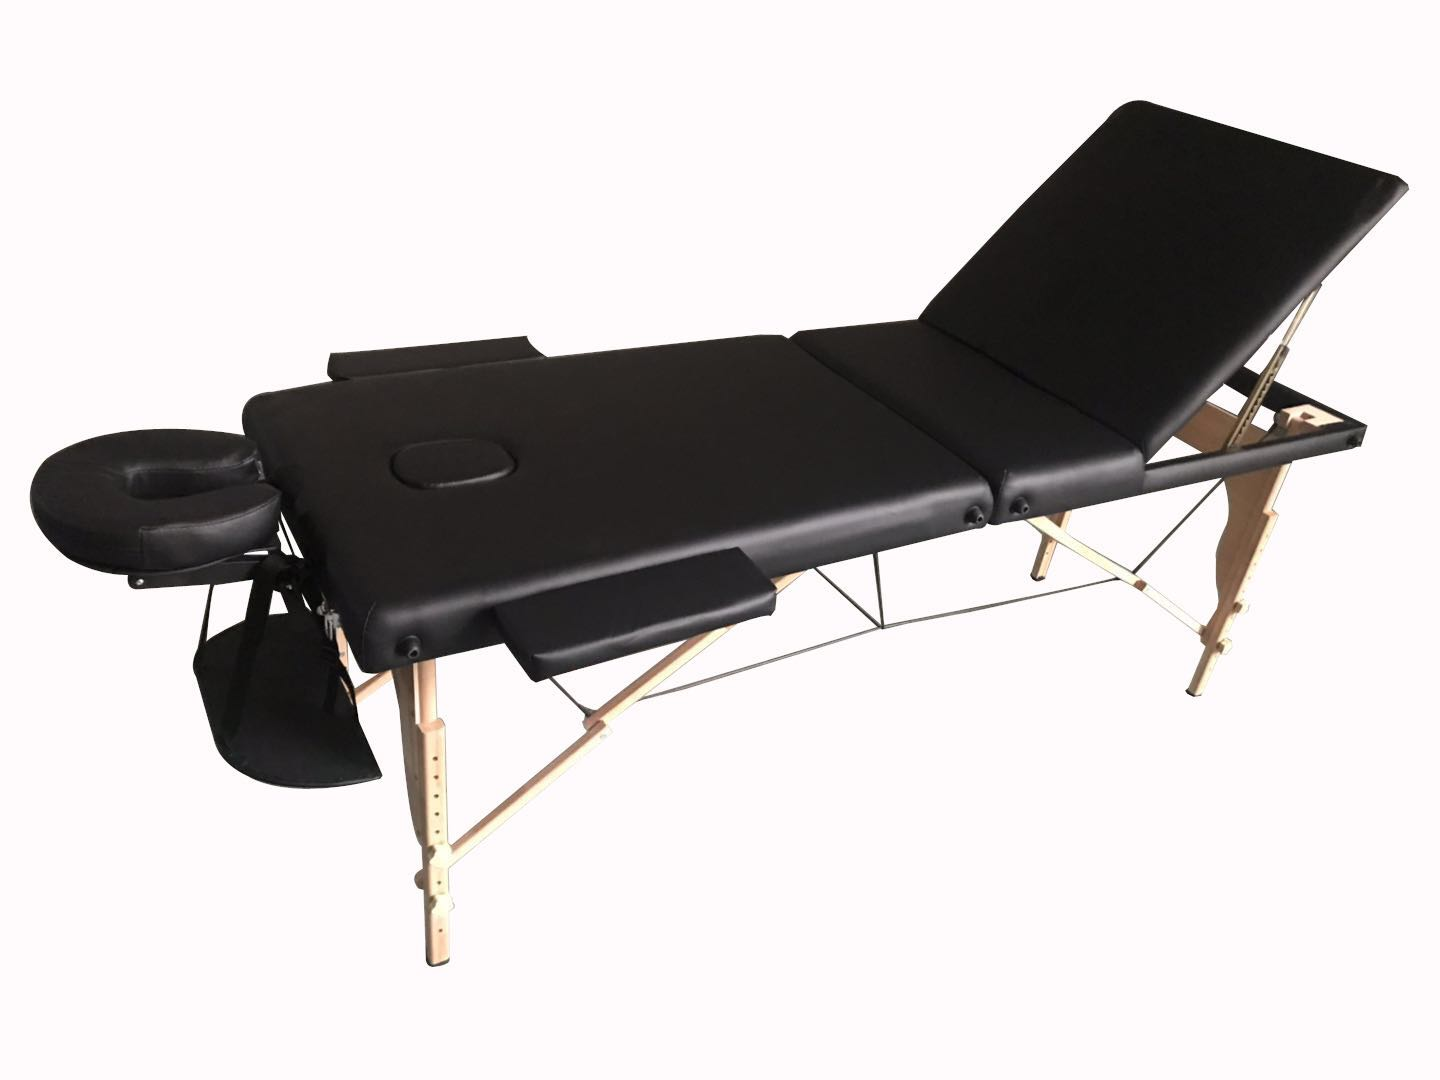 Clearance Special Folding Massage Bed Portable Portable Massage Bed Health Treatment Bed Beauty Bed